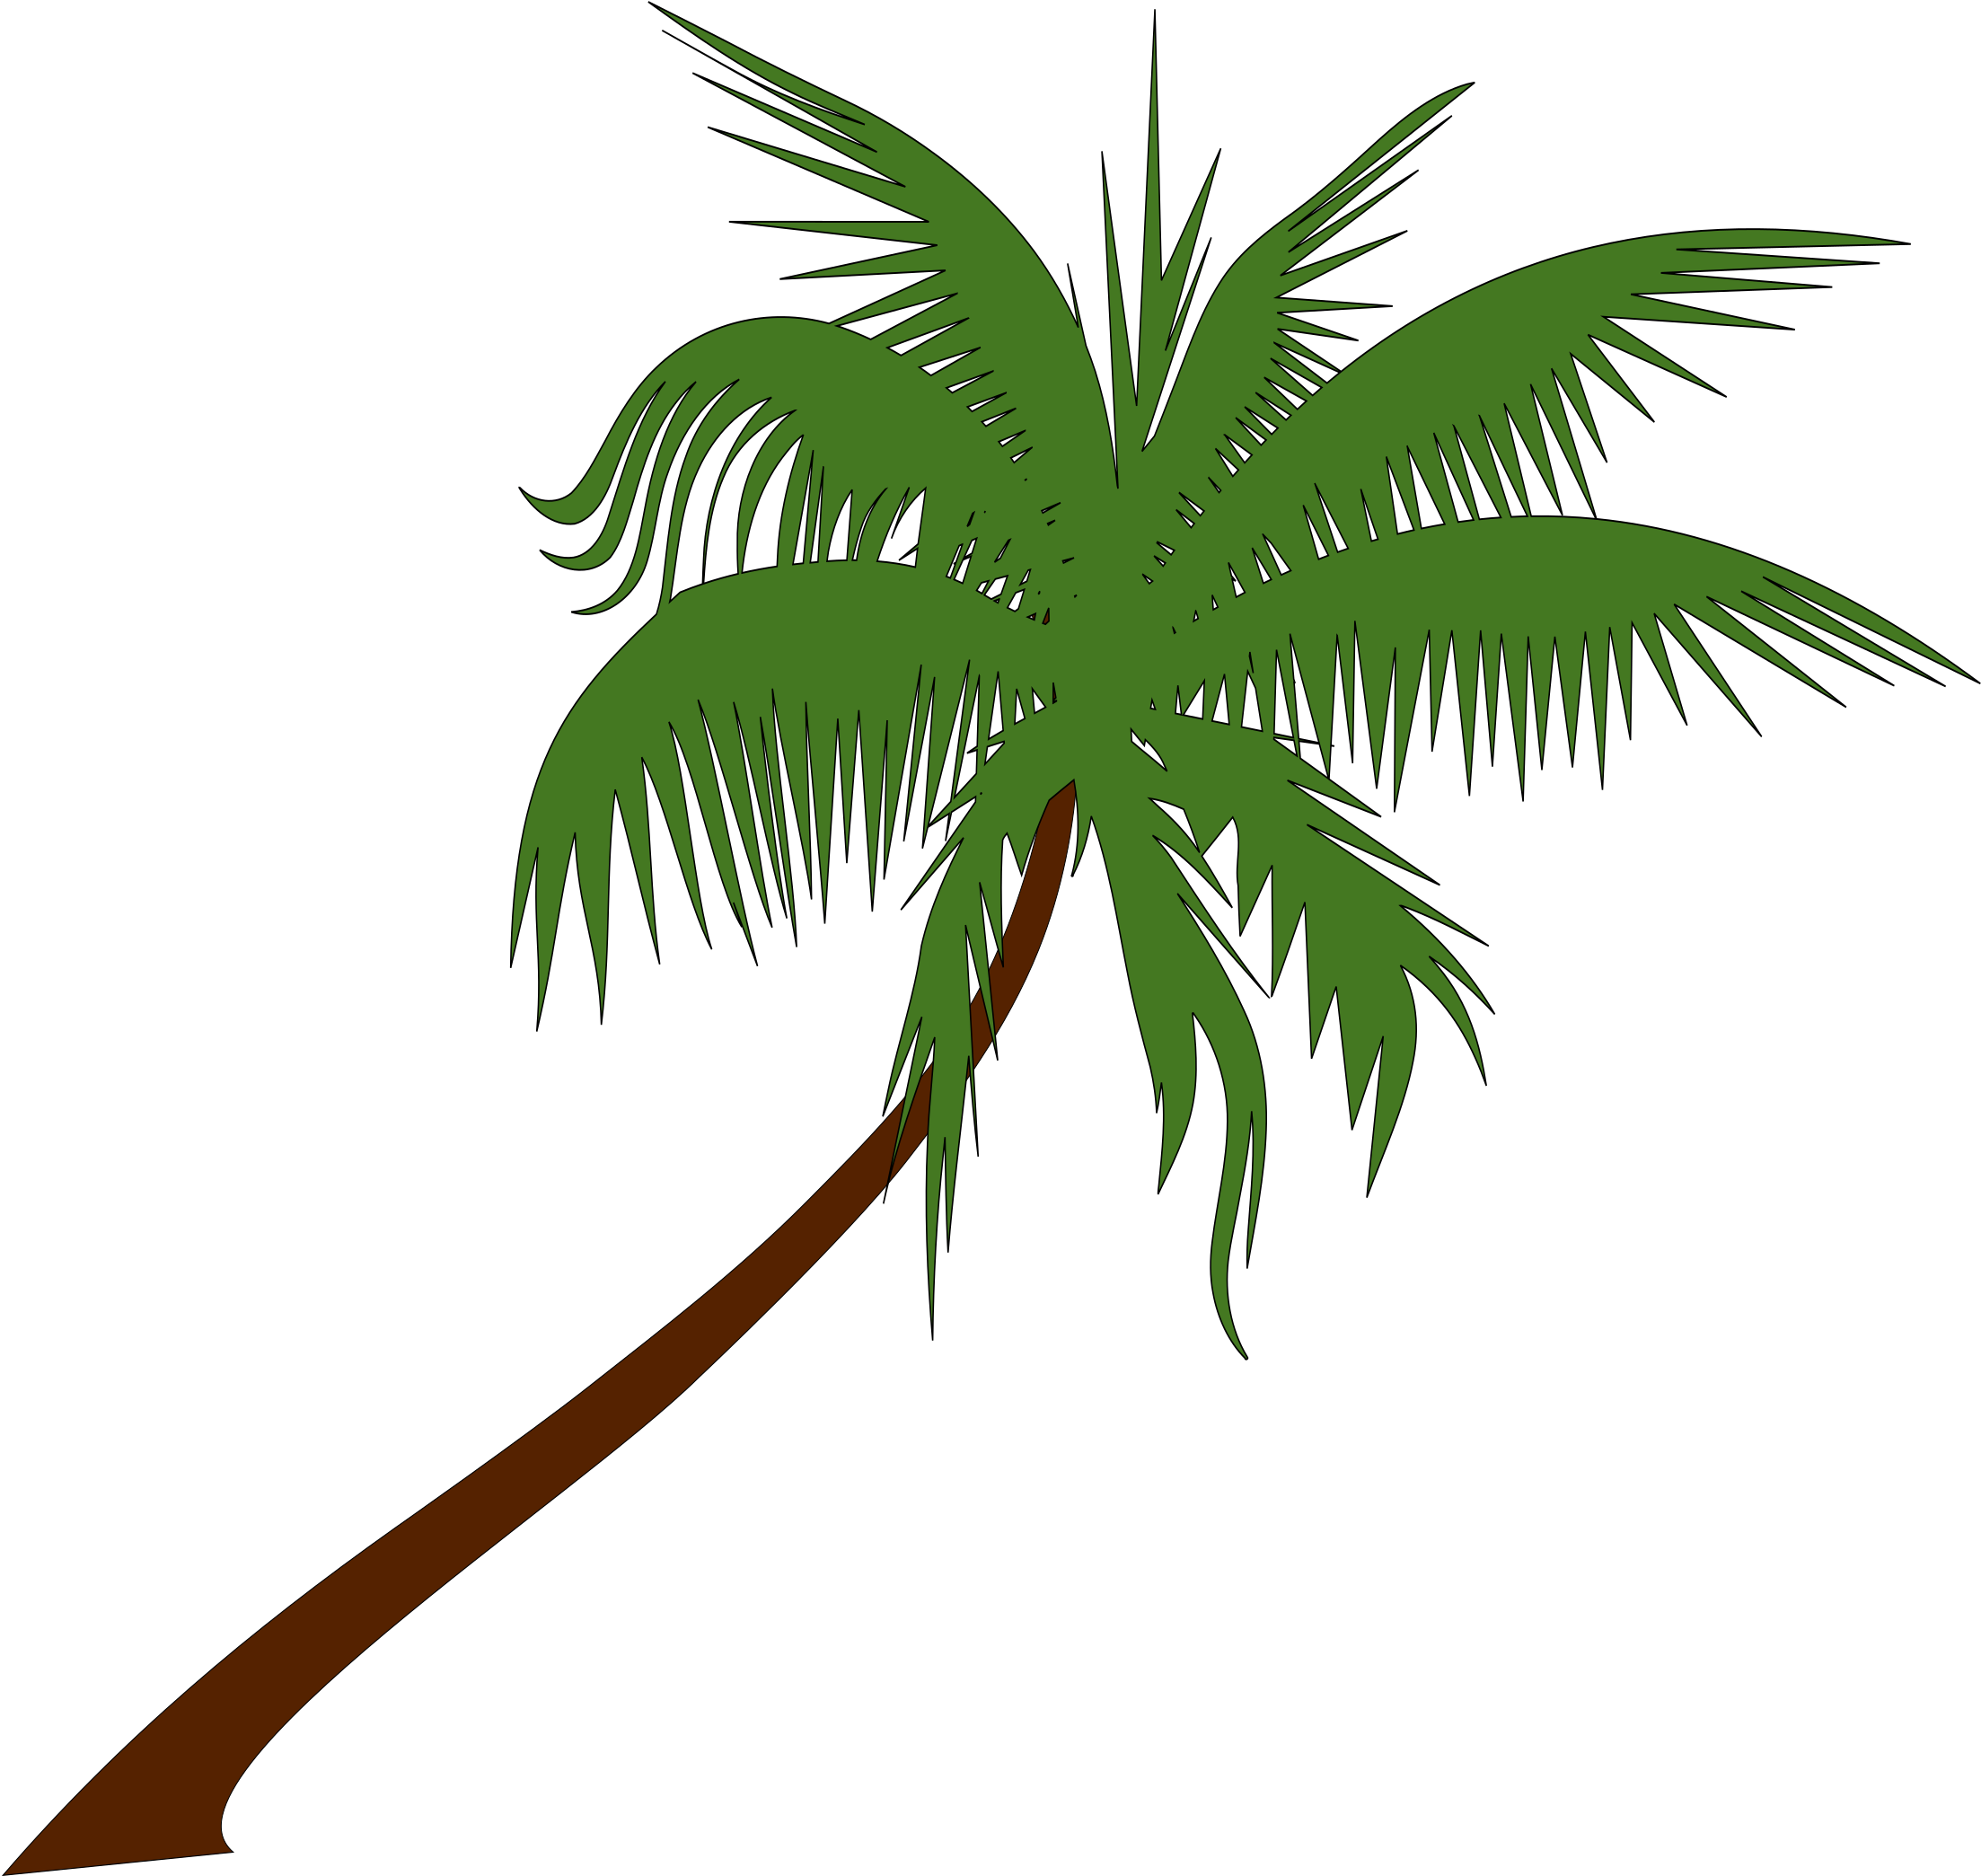 Download tree at getdrawings. Palm leaf drawing png vector royalty free